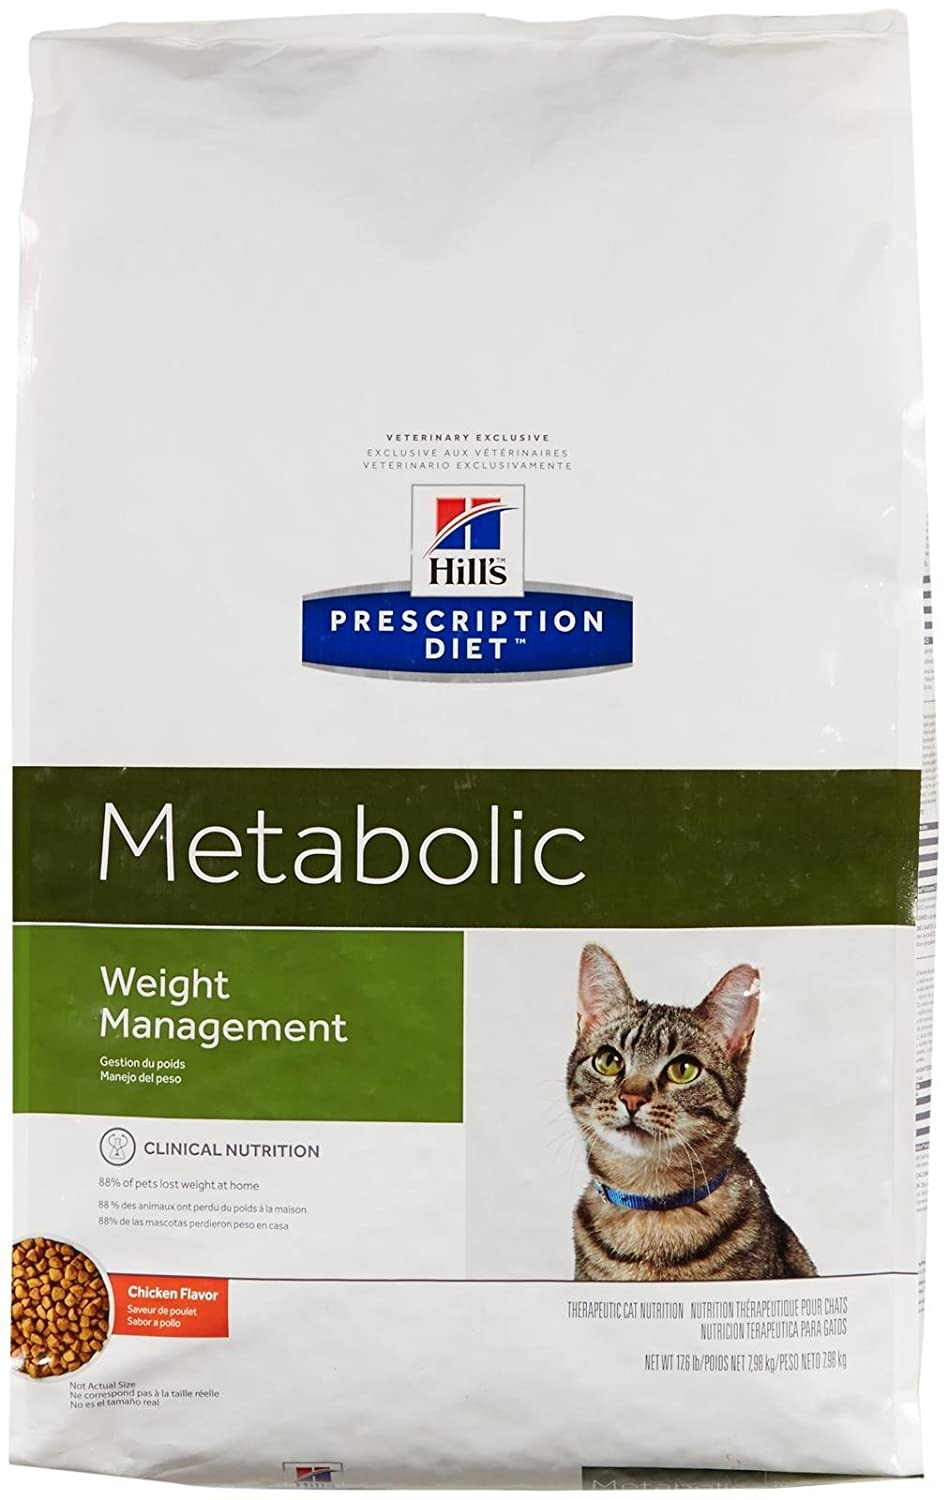 Amazon.com : Hills Prescription Diet Feline Metabolic Advanced Weight Solution Dry Cat Food, 17.6-lb bag : Pet Food : Pet Supplies